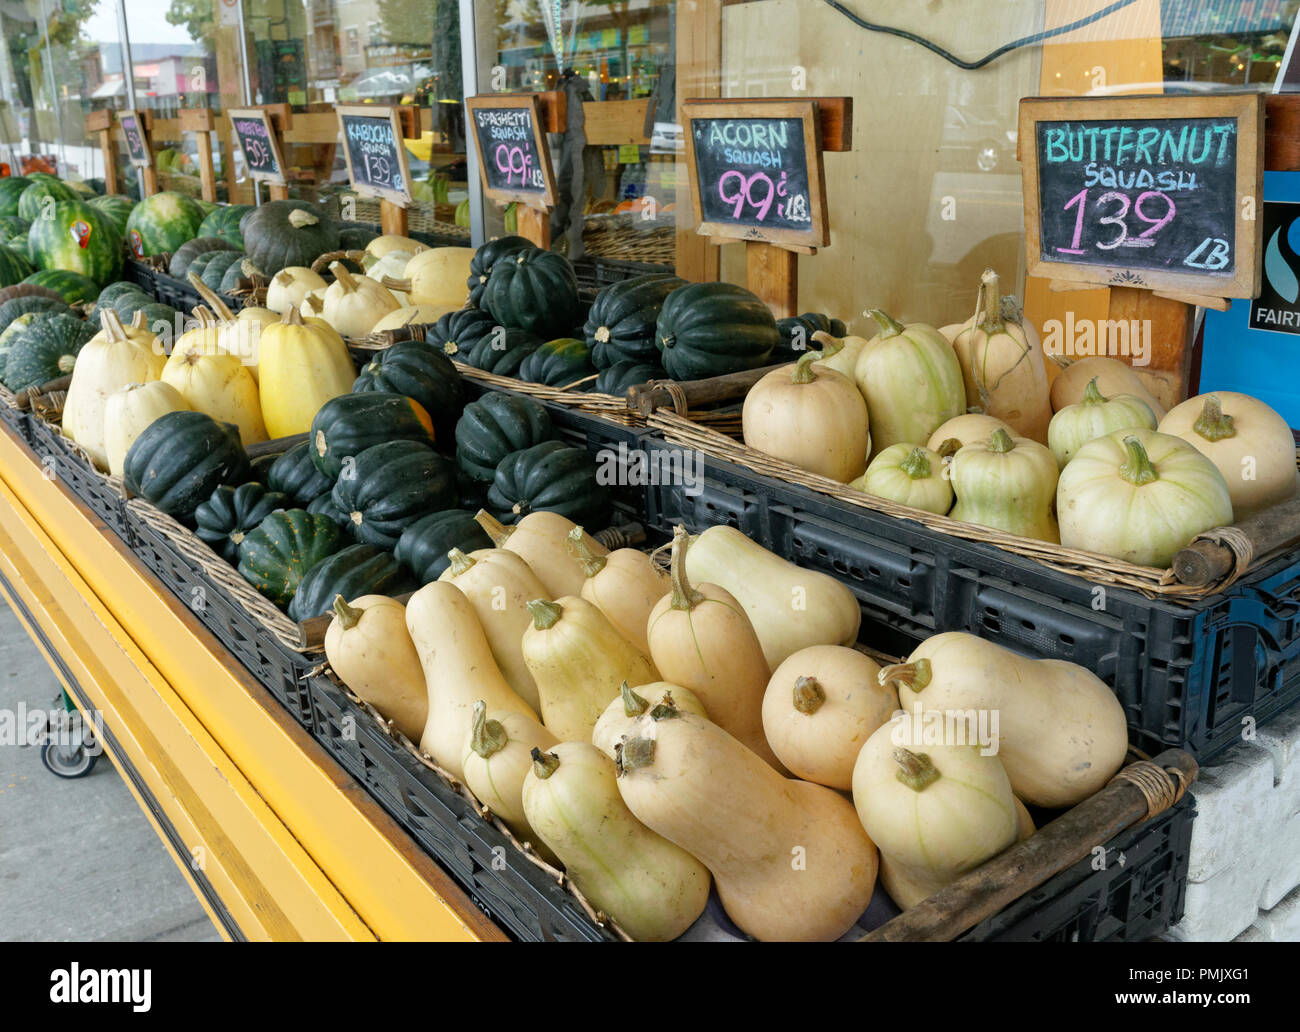 Varieties of squash for sale outside a grocery store on Main Street in Vancouver, BC, Canada Stock Photo